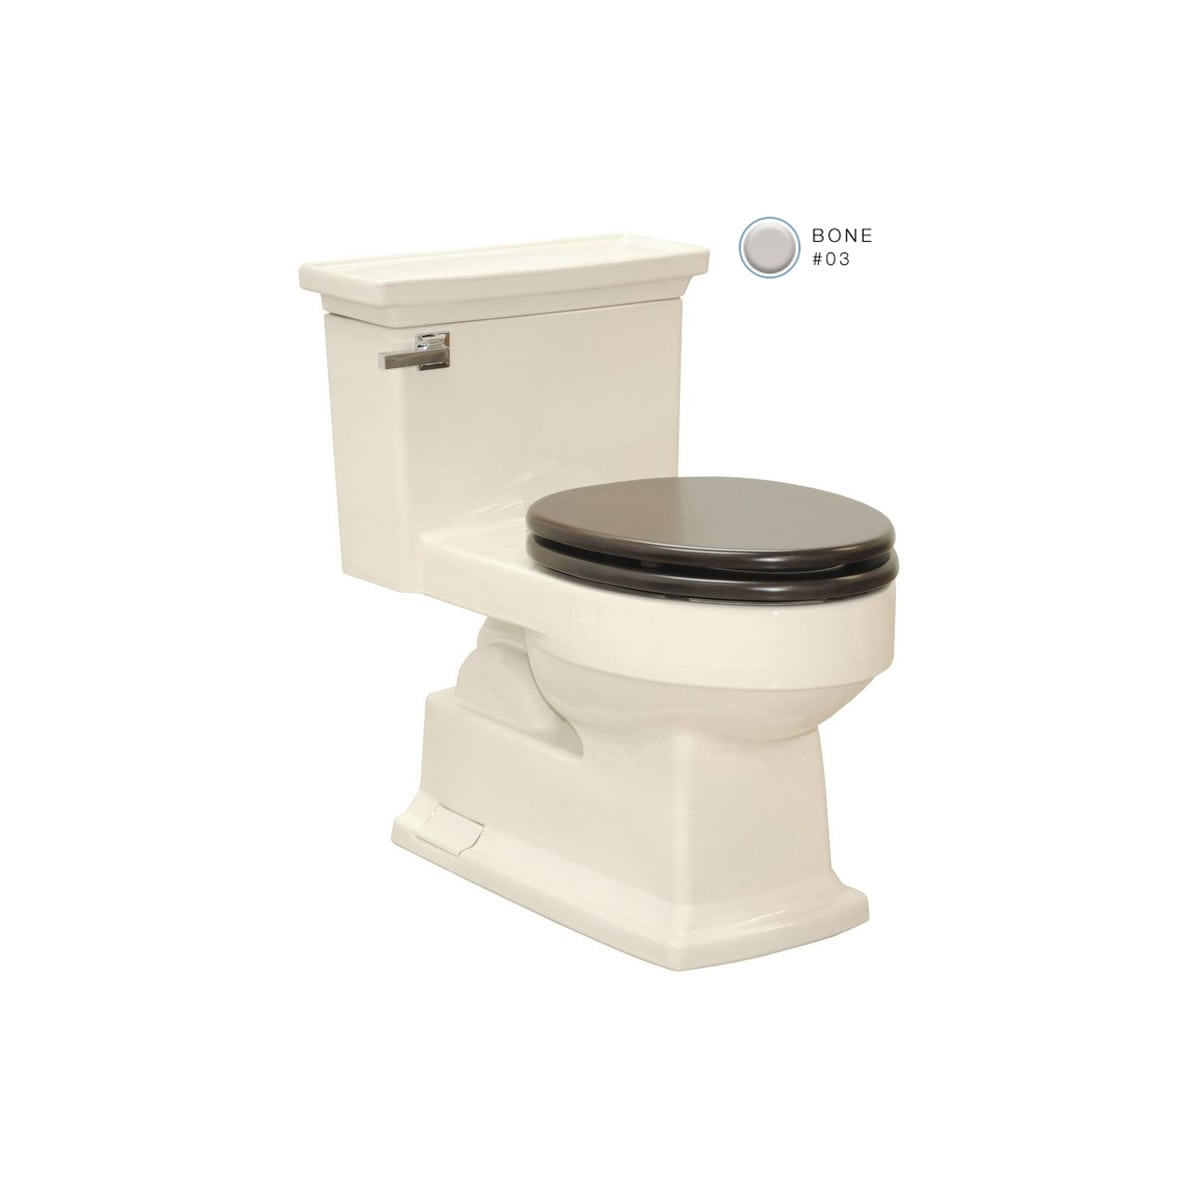 Toto Discontinued Toilets | www.topsimages.com